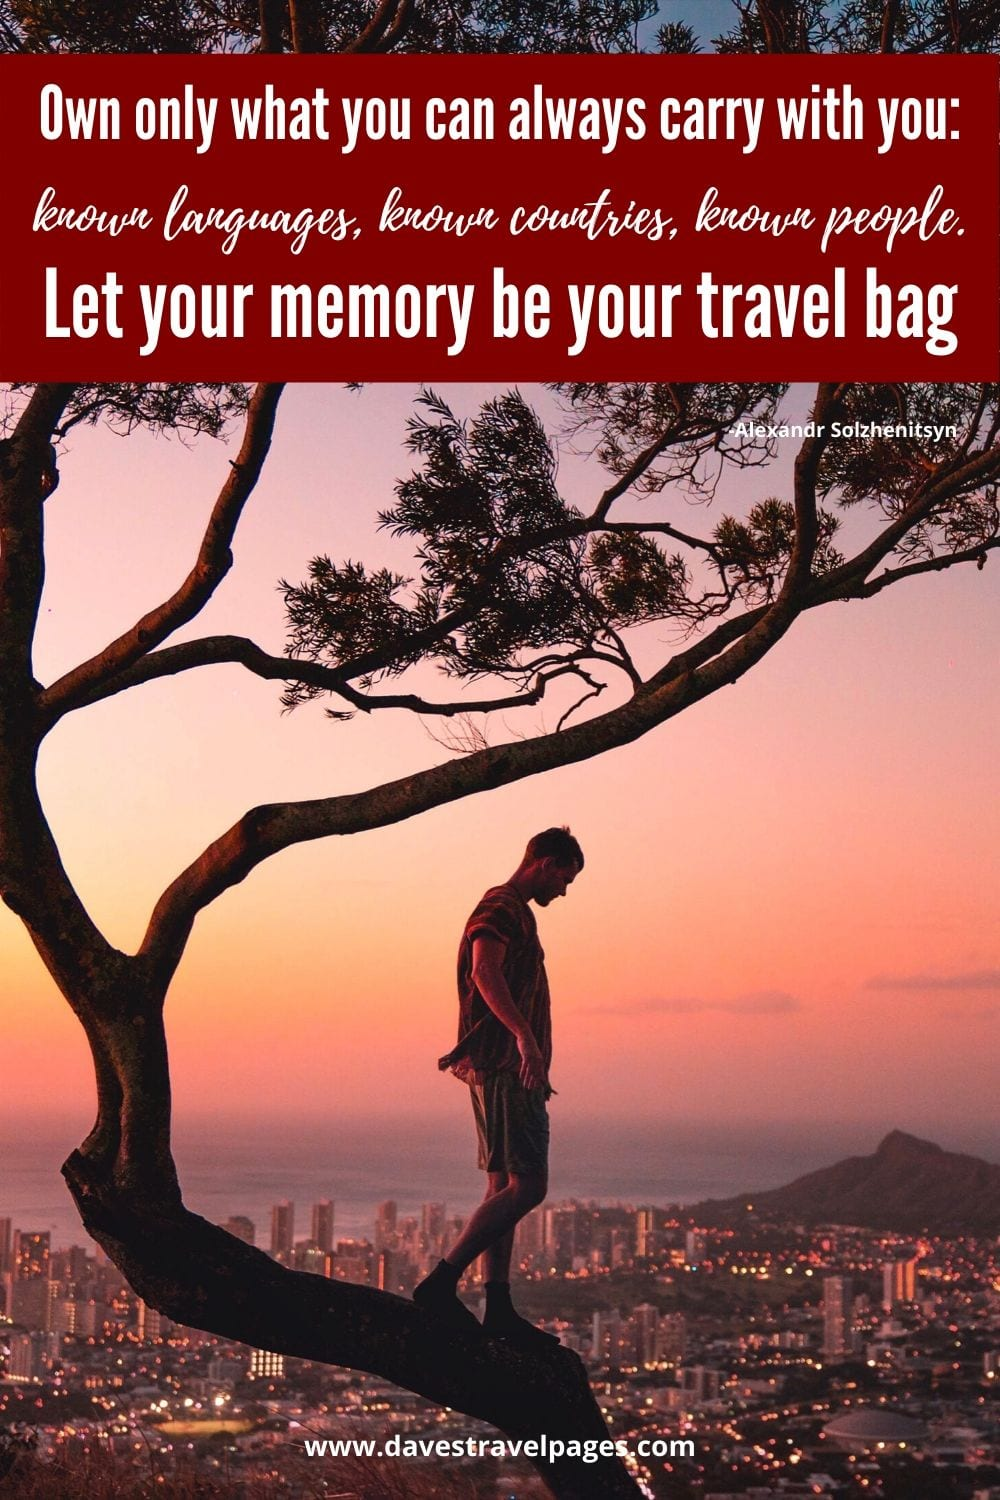 "Quotes about traveling: Own only what you can always carry with you: known languages, known countries, known people. Let your memory be your travel bag"" - Alexandr Solzhenitsyn"